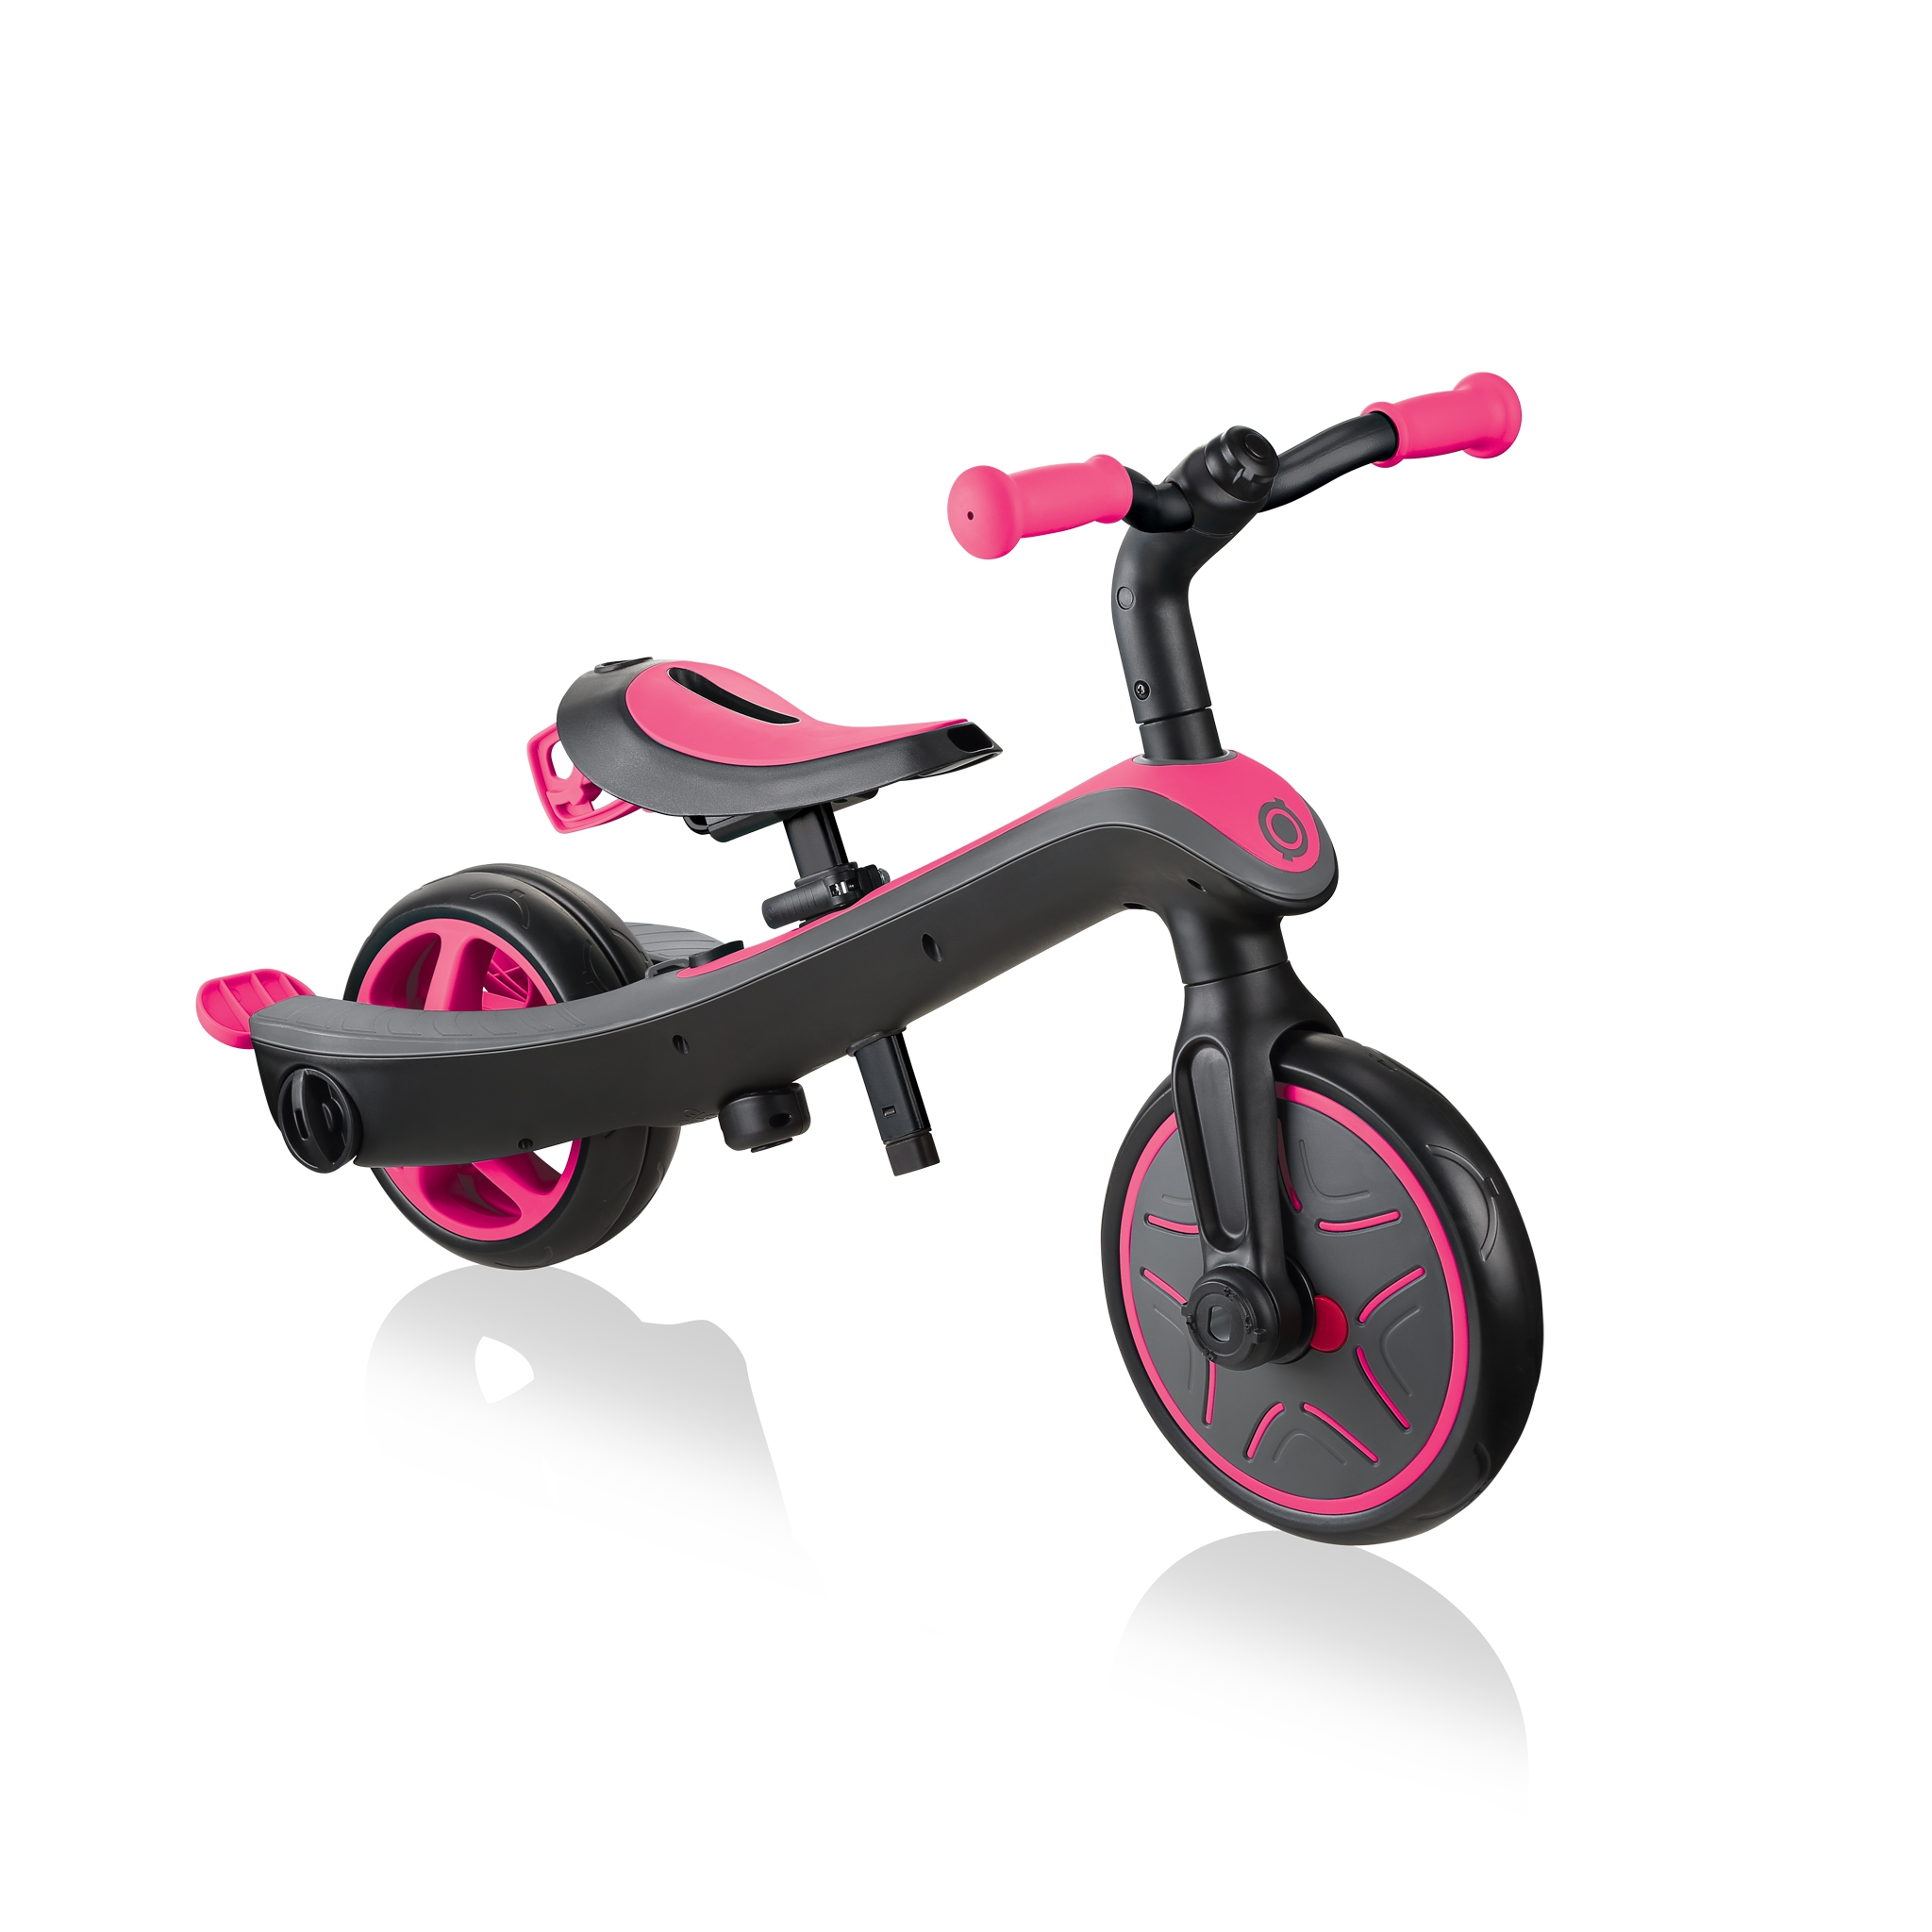 Globber-EXPLORER-TRIKE-4in1-all-in-one-baby-tricycle-and-kids-balance-bike-stage4-balance-bike 3